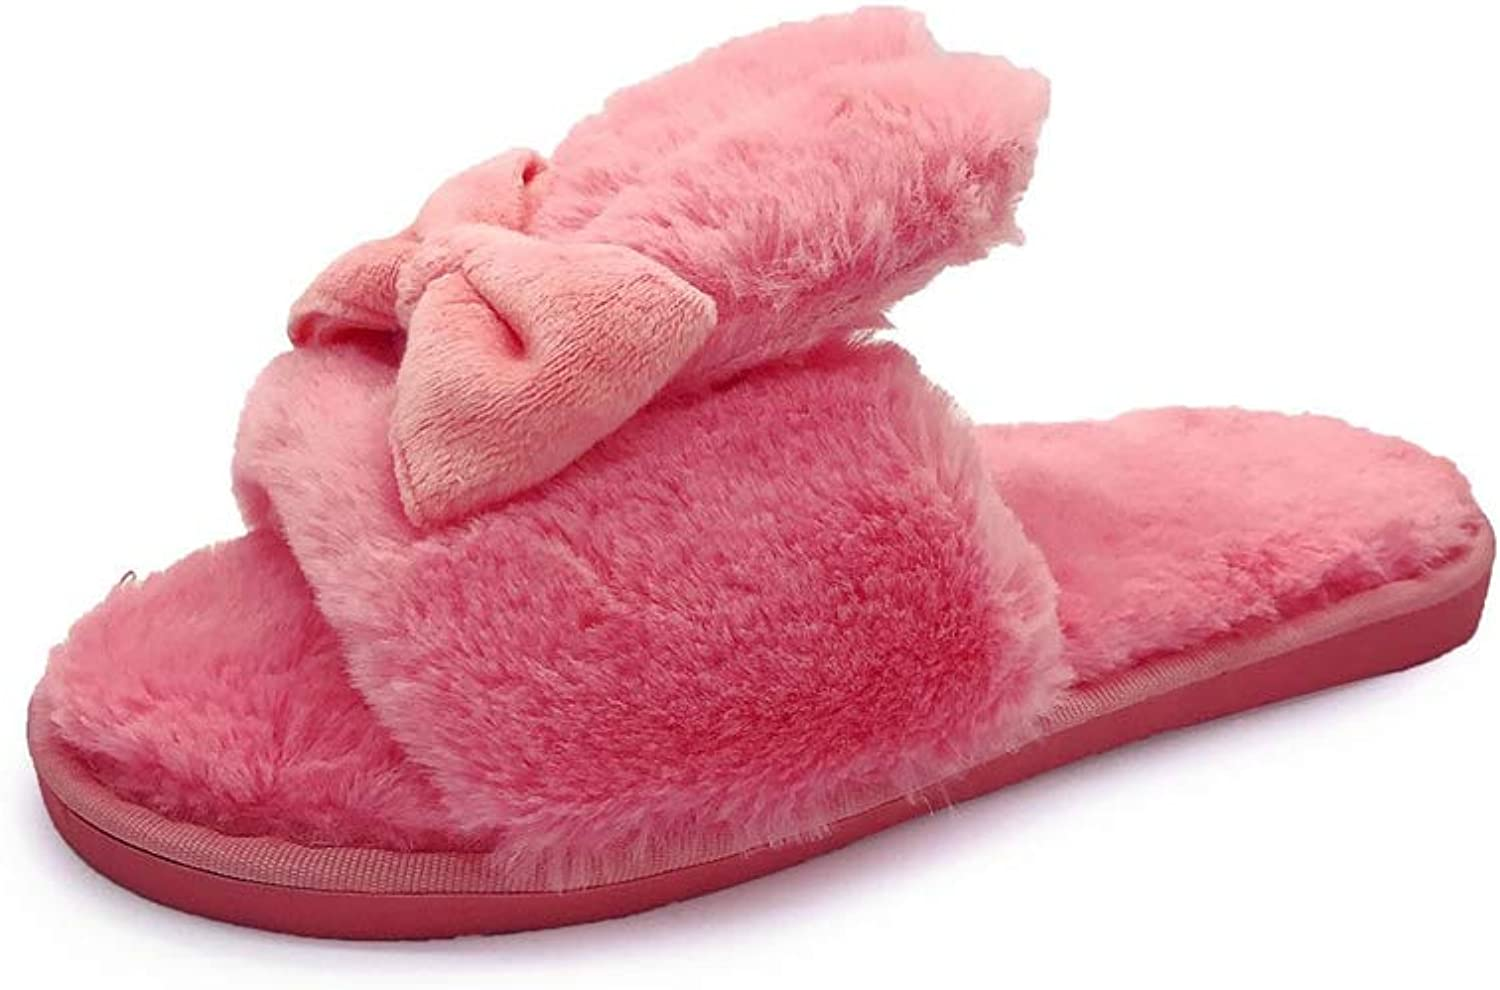 T-JULY Women's Winter Fur Slides Sandals shoes Home Slippers Cute Rabbit Ears Bow Warm Flat Plush Indoor Outdoor Mules